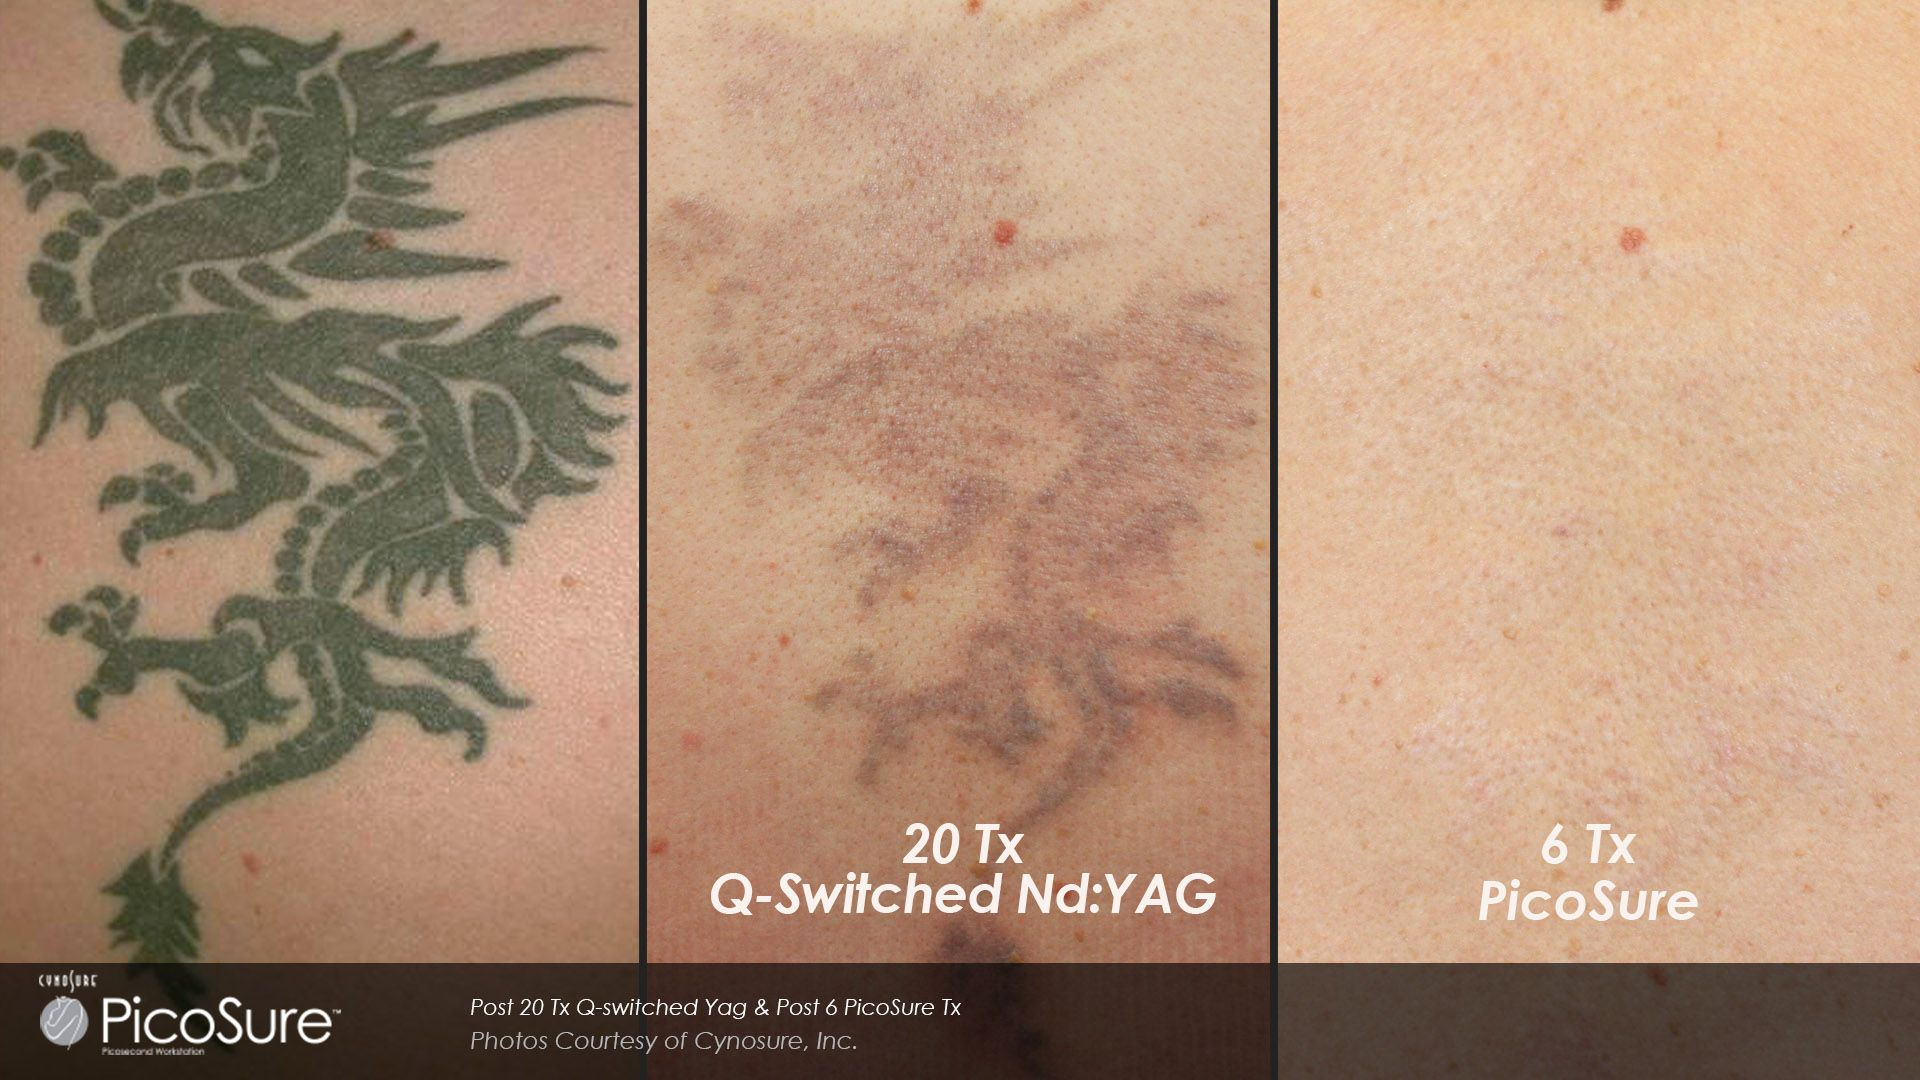 Before and after laser tattoo removal results